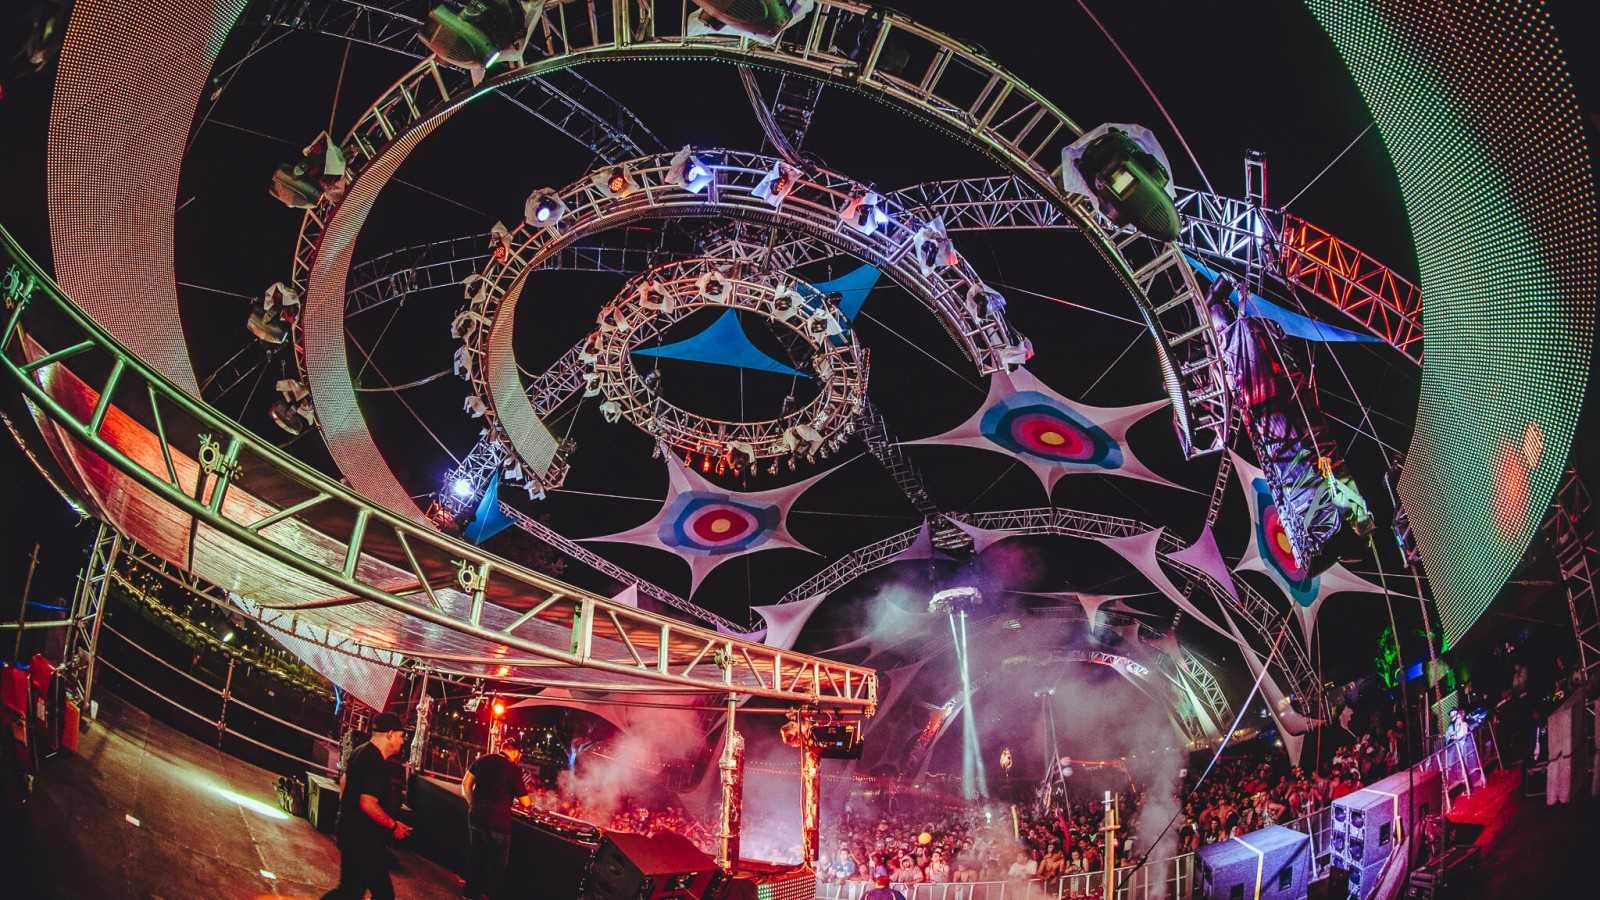 Horizon stage at Sunset Music Festival 2016